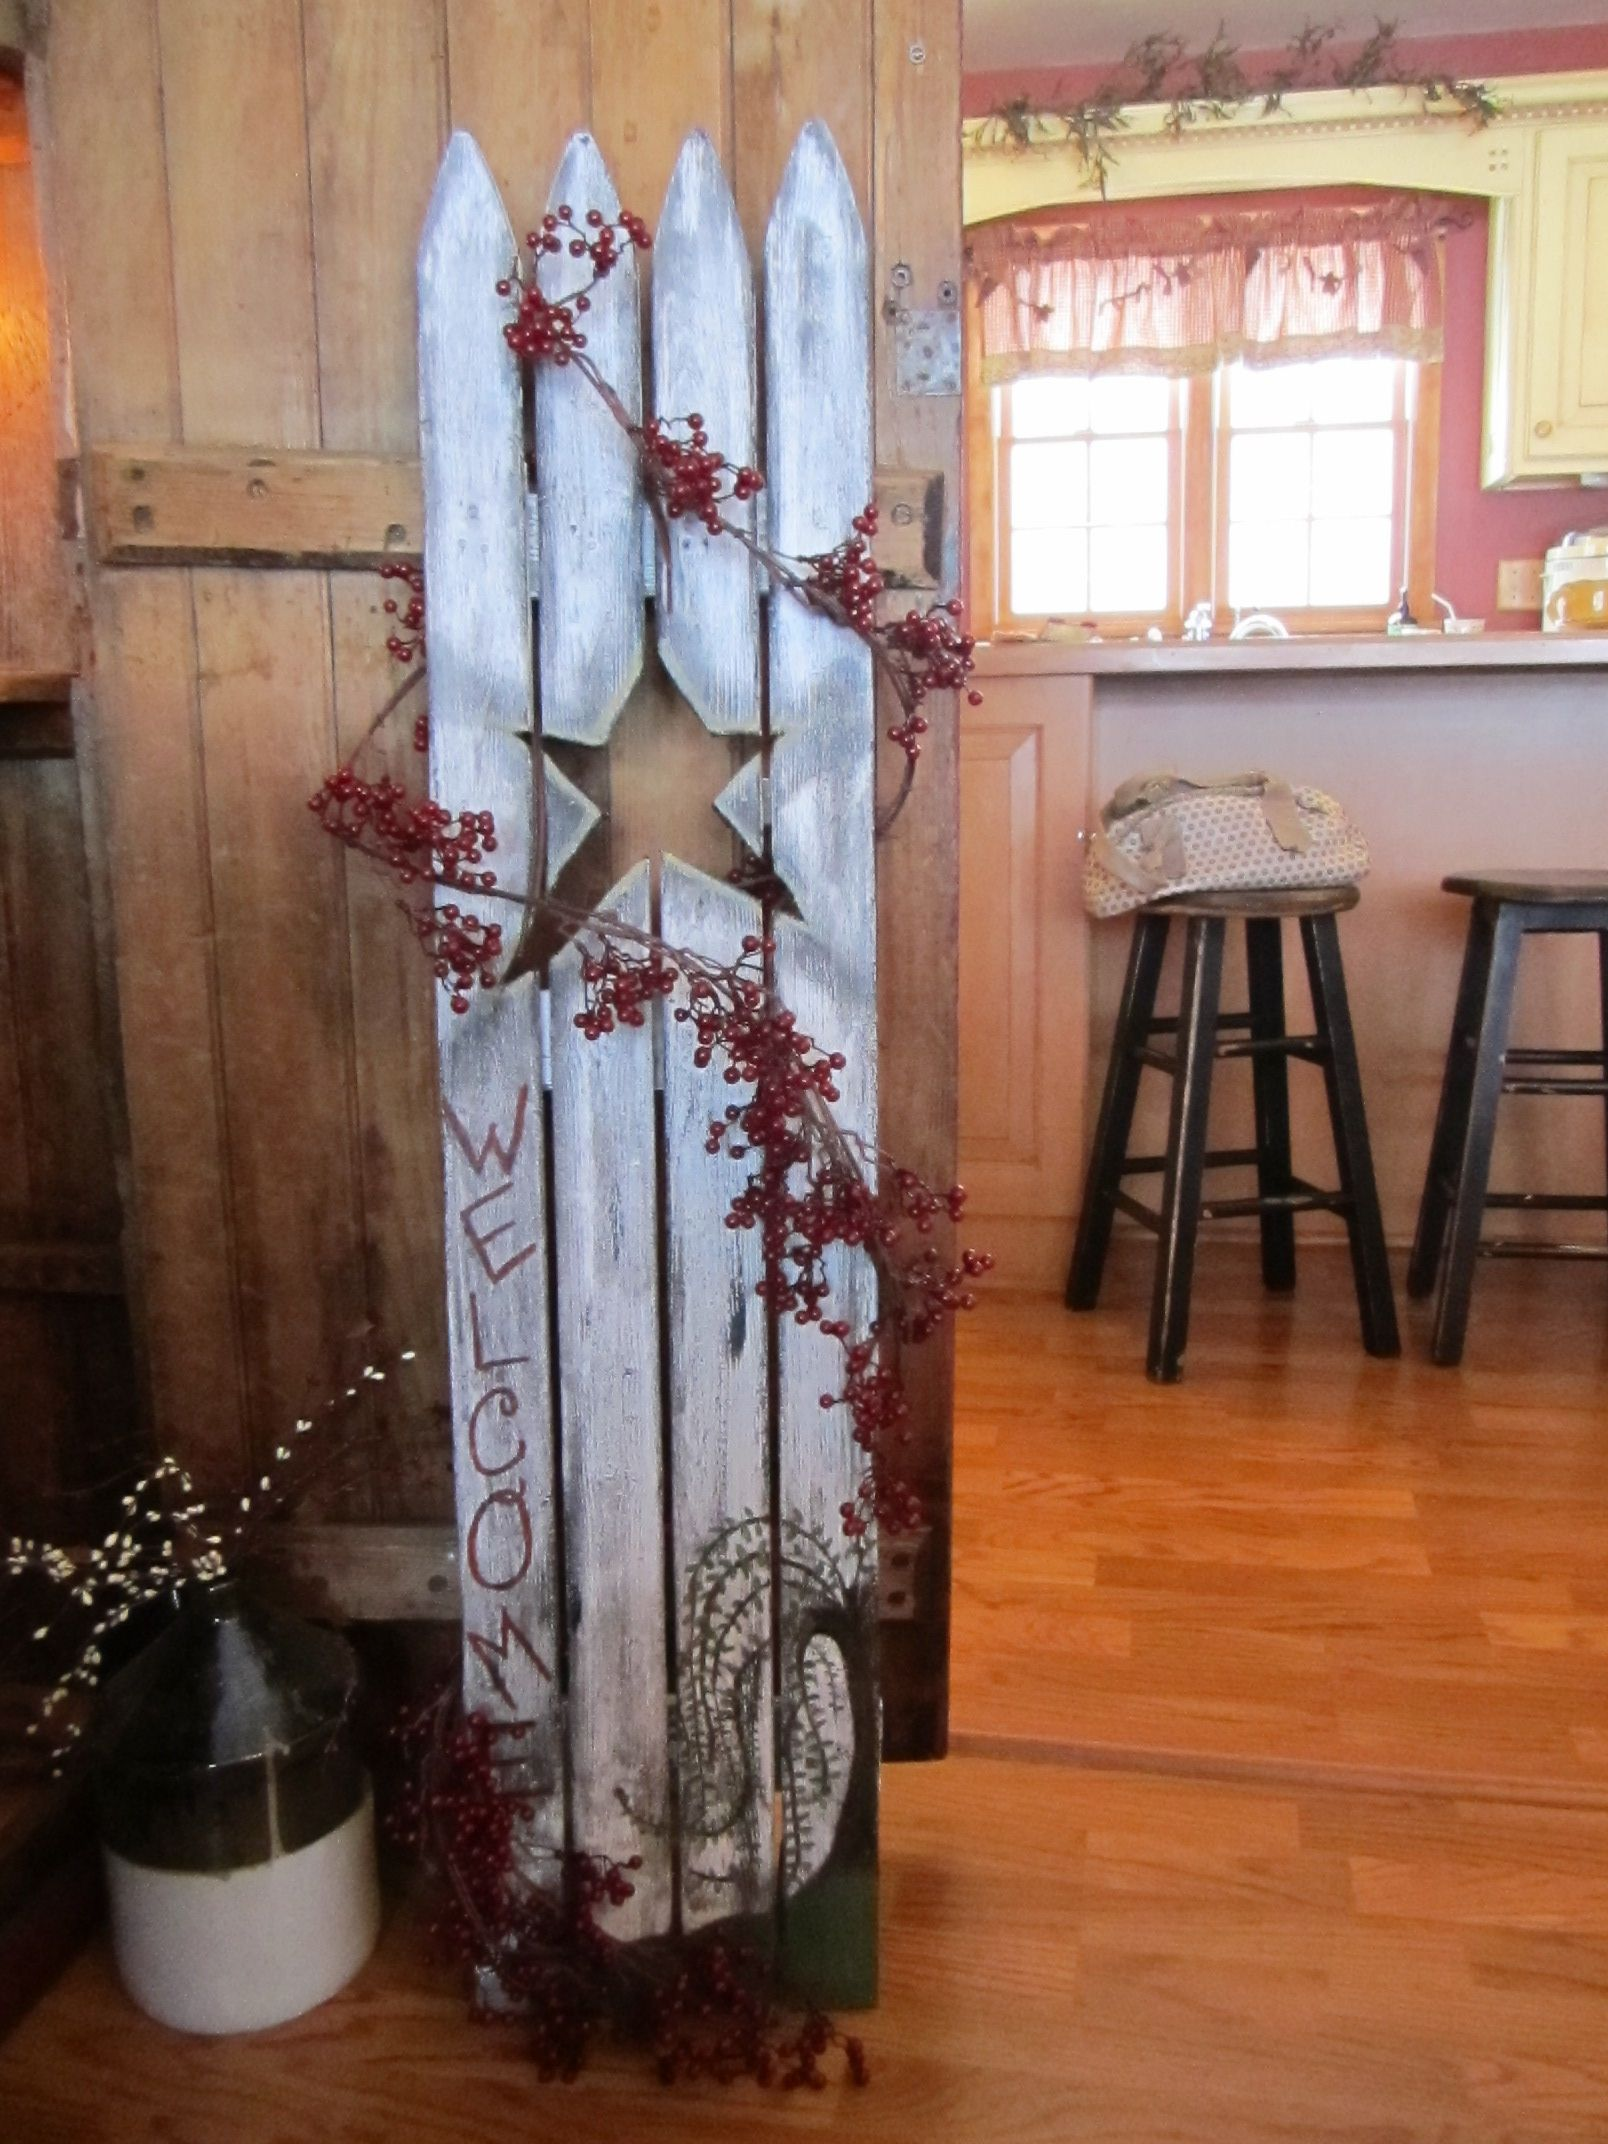 Picket fence welcome sign furniture refurbishing pinterest picket fence welcome sign rubansaba